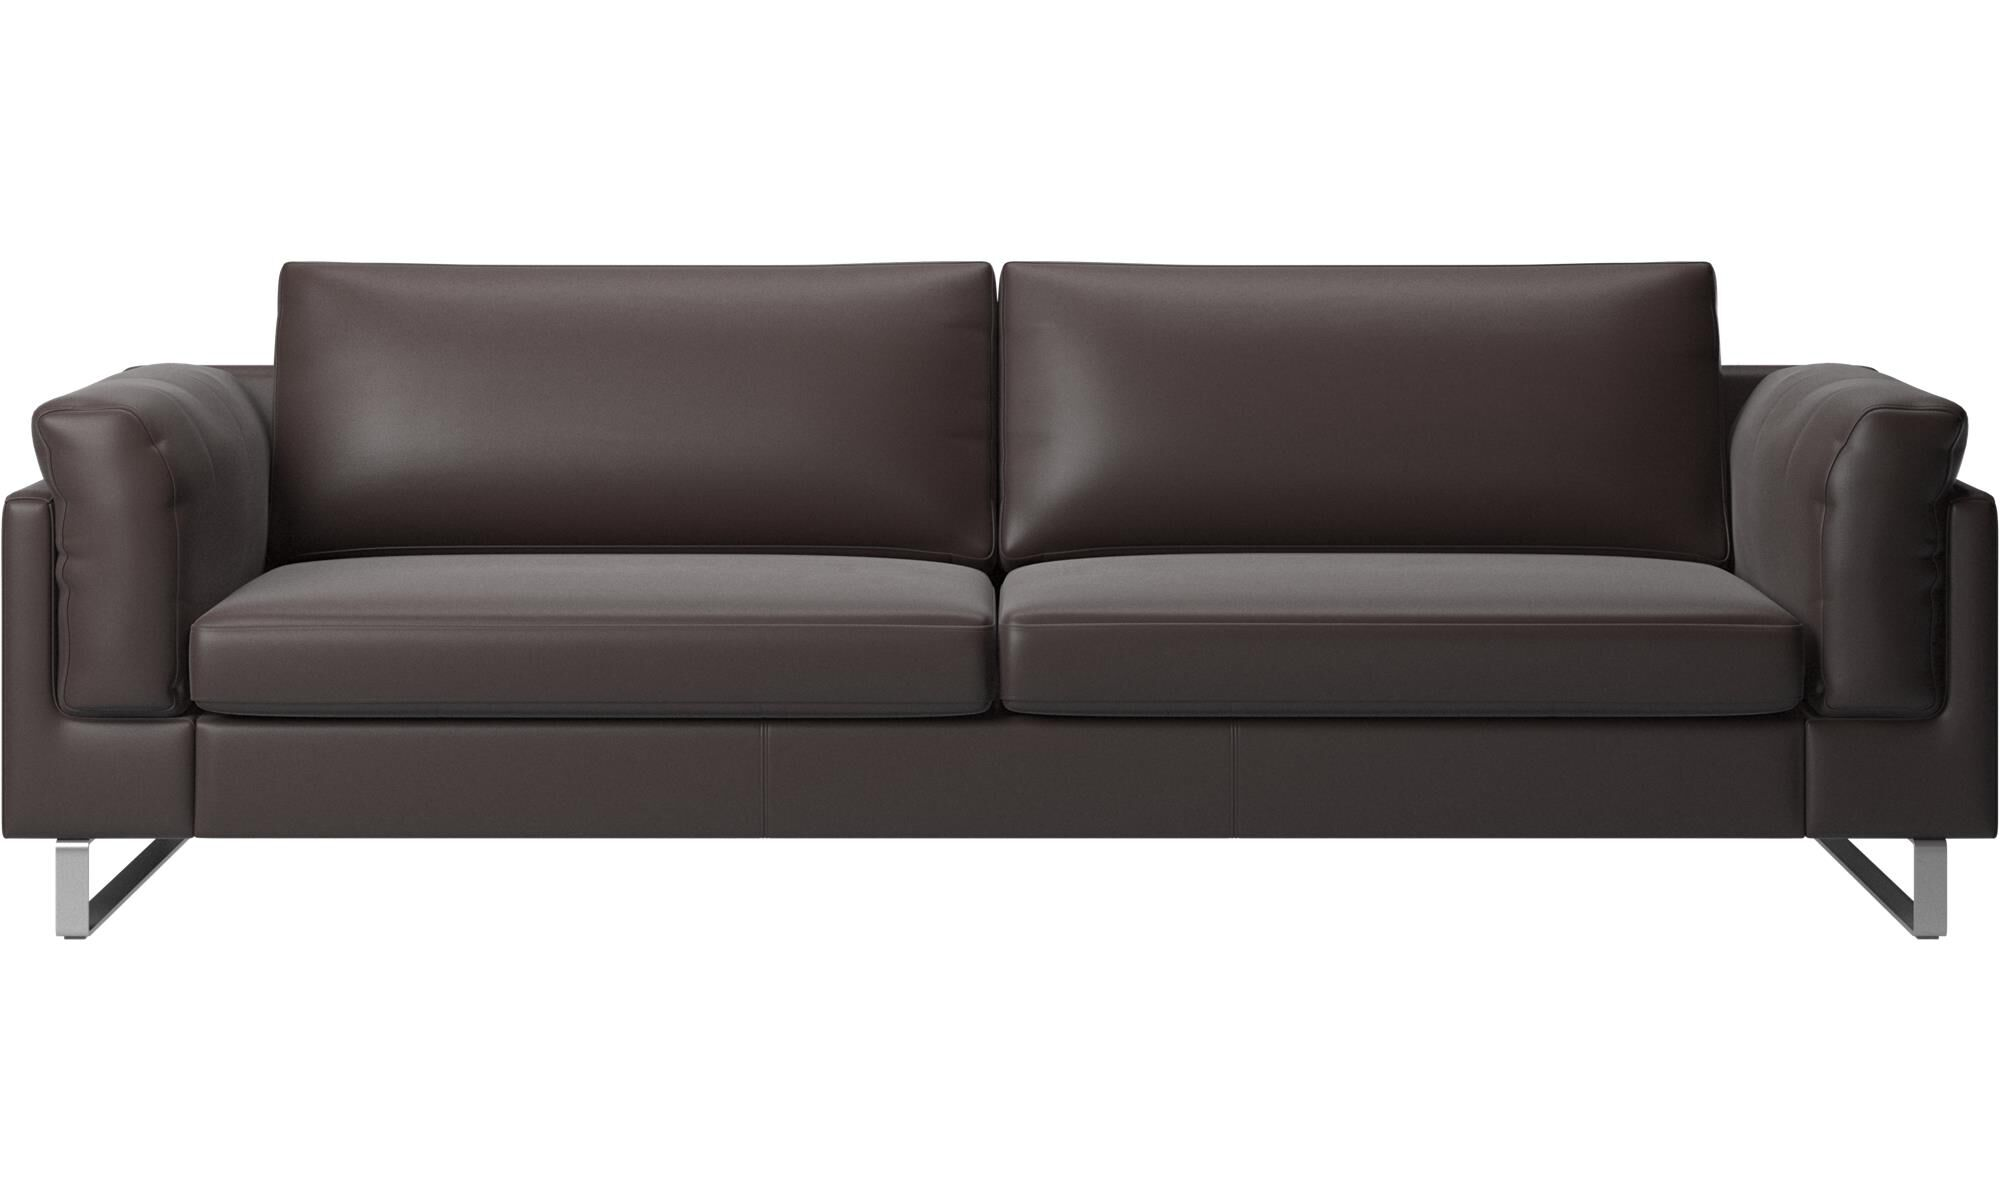 3 Seater Sofas   Indivi 2 Sofa   Brown   Leather ...